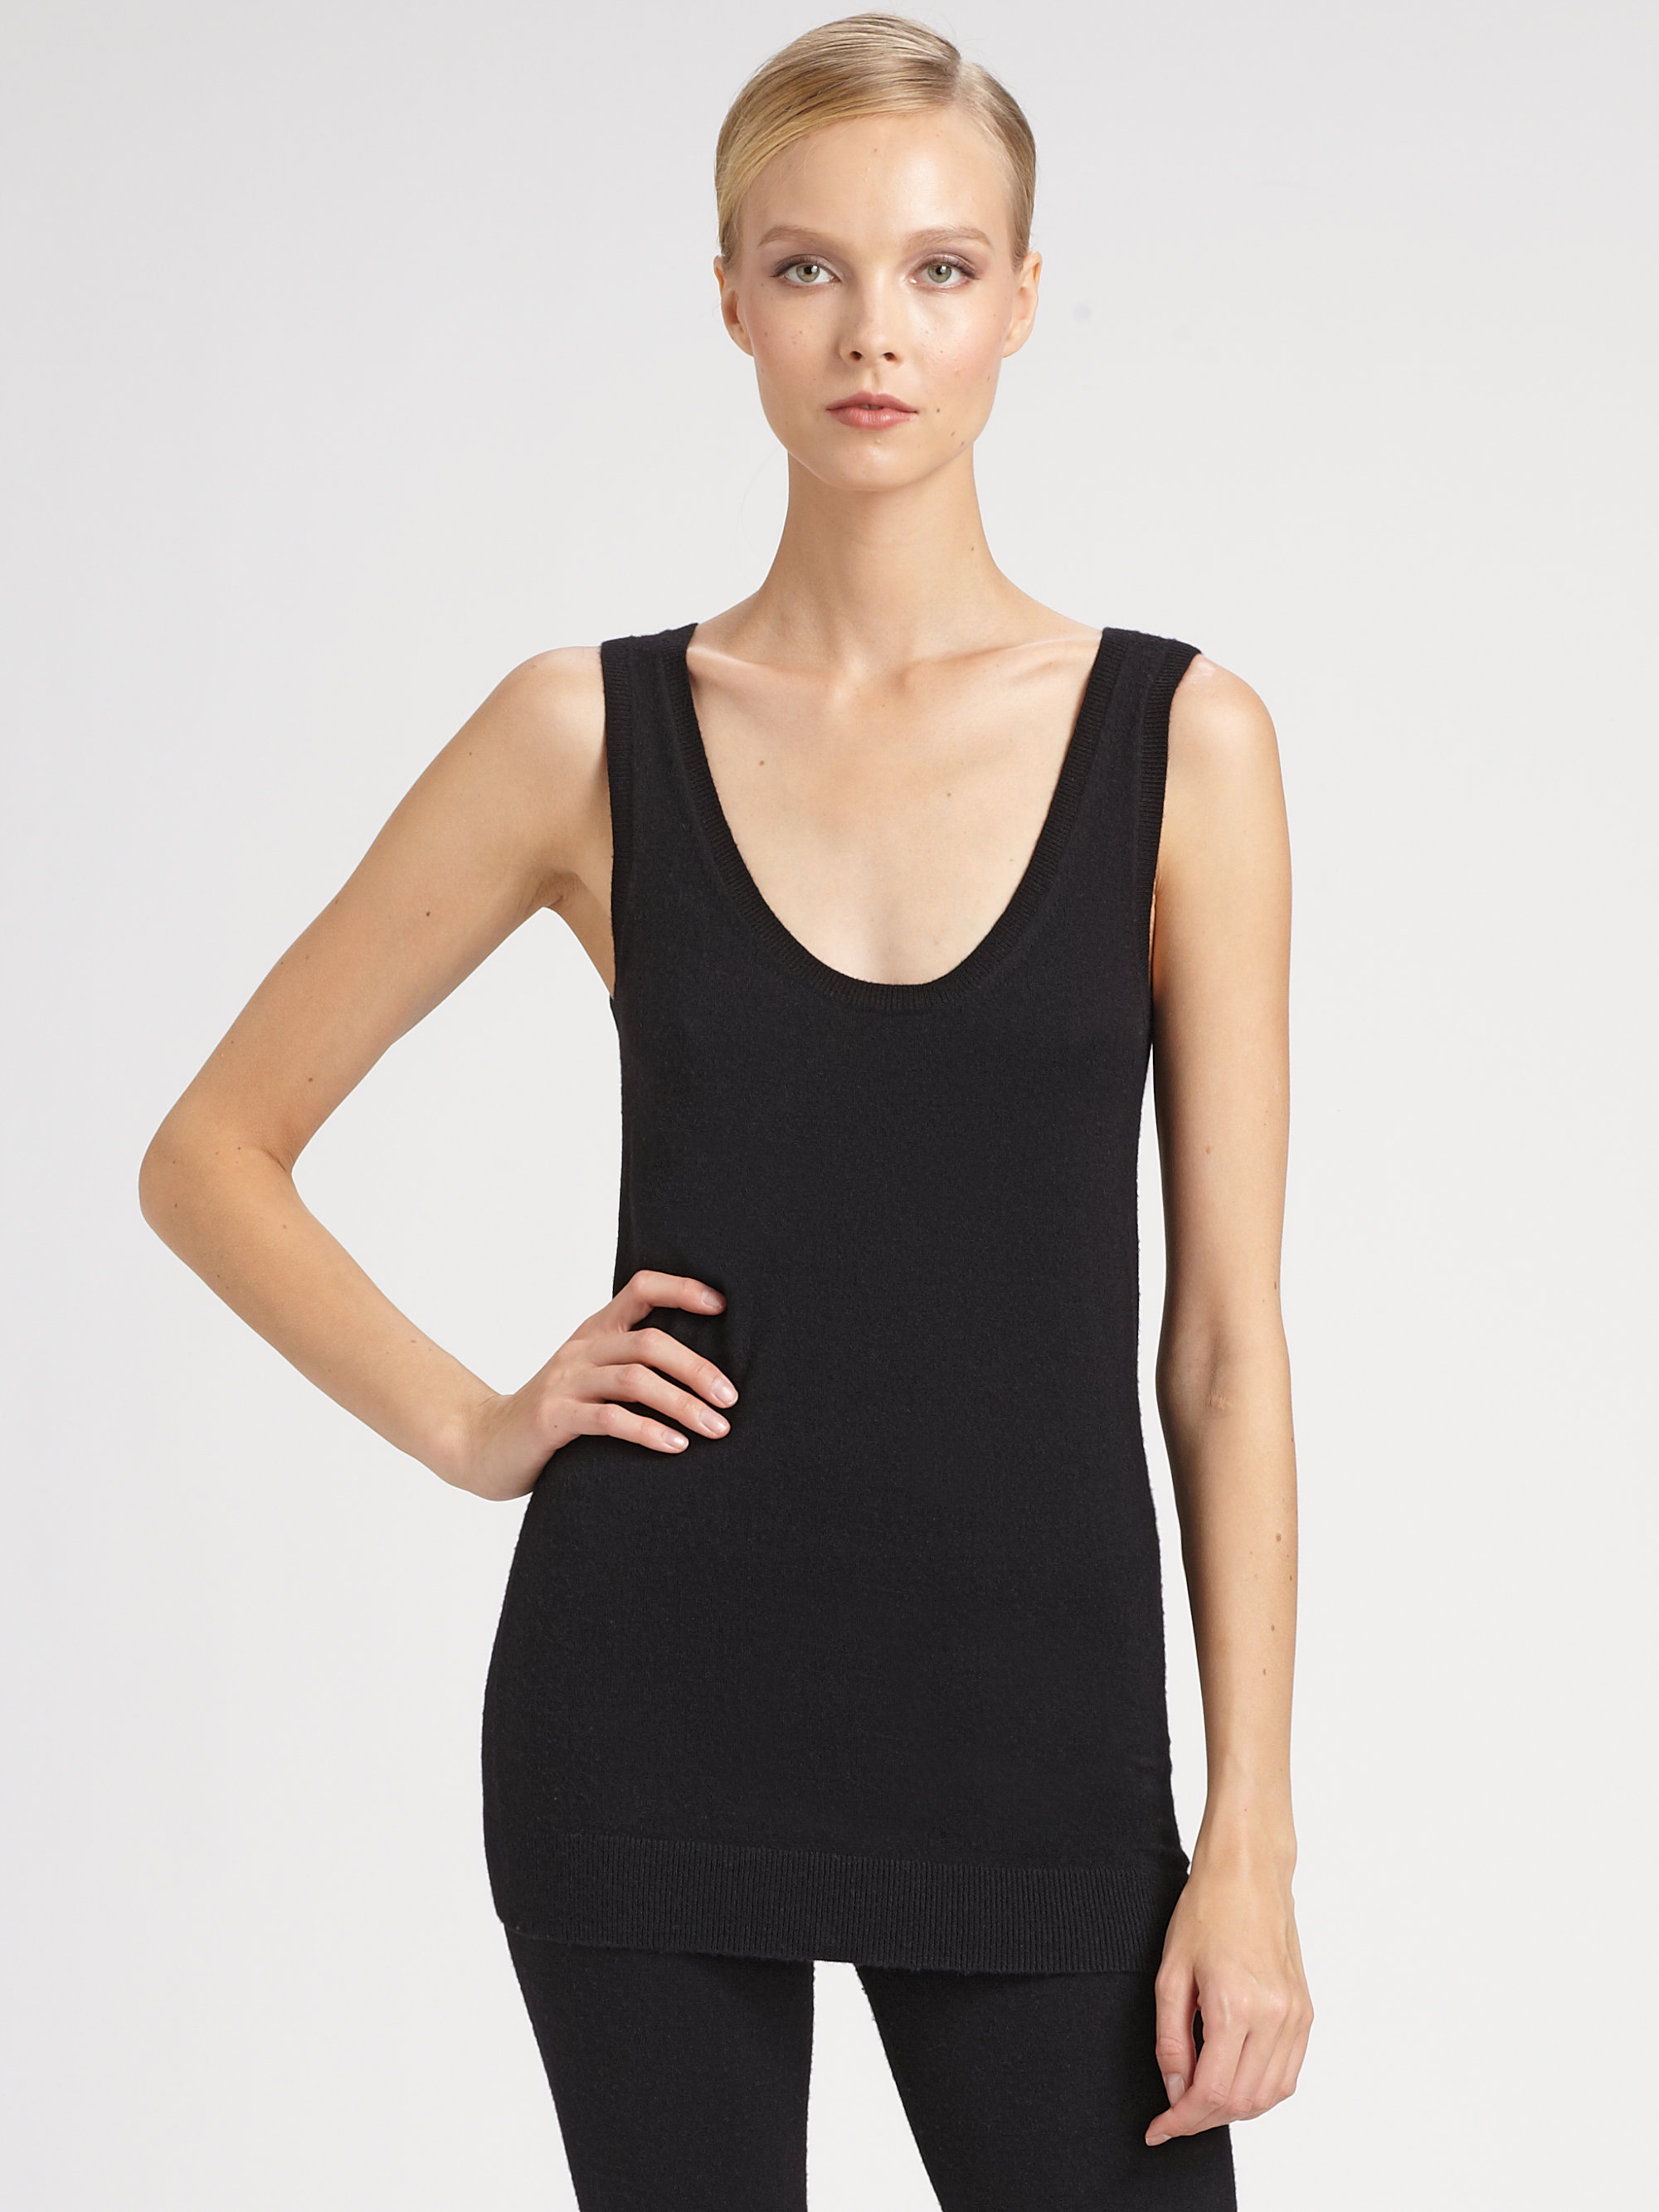 Donna karan new york first layer cashmere tank in black lyst for Donna karen new york